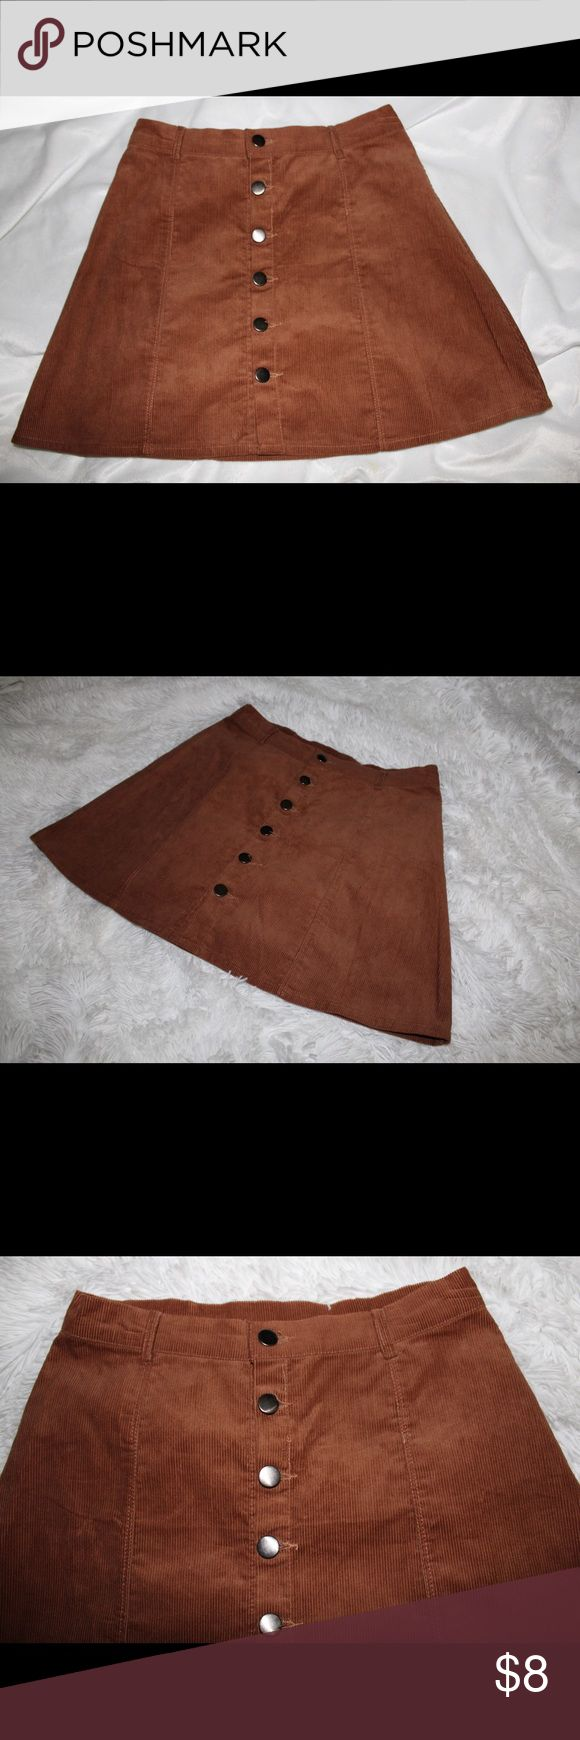 BUTTON CORDUROY A-LINE SKIRT Cute button up skirt. Fits well, just too short for my teacher dress code. Only worn once. Because it's ROMWE there are no tags, but I did order a medium. ROMWE Skirts Mini